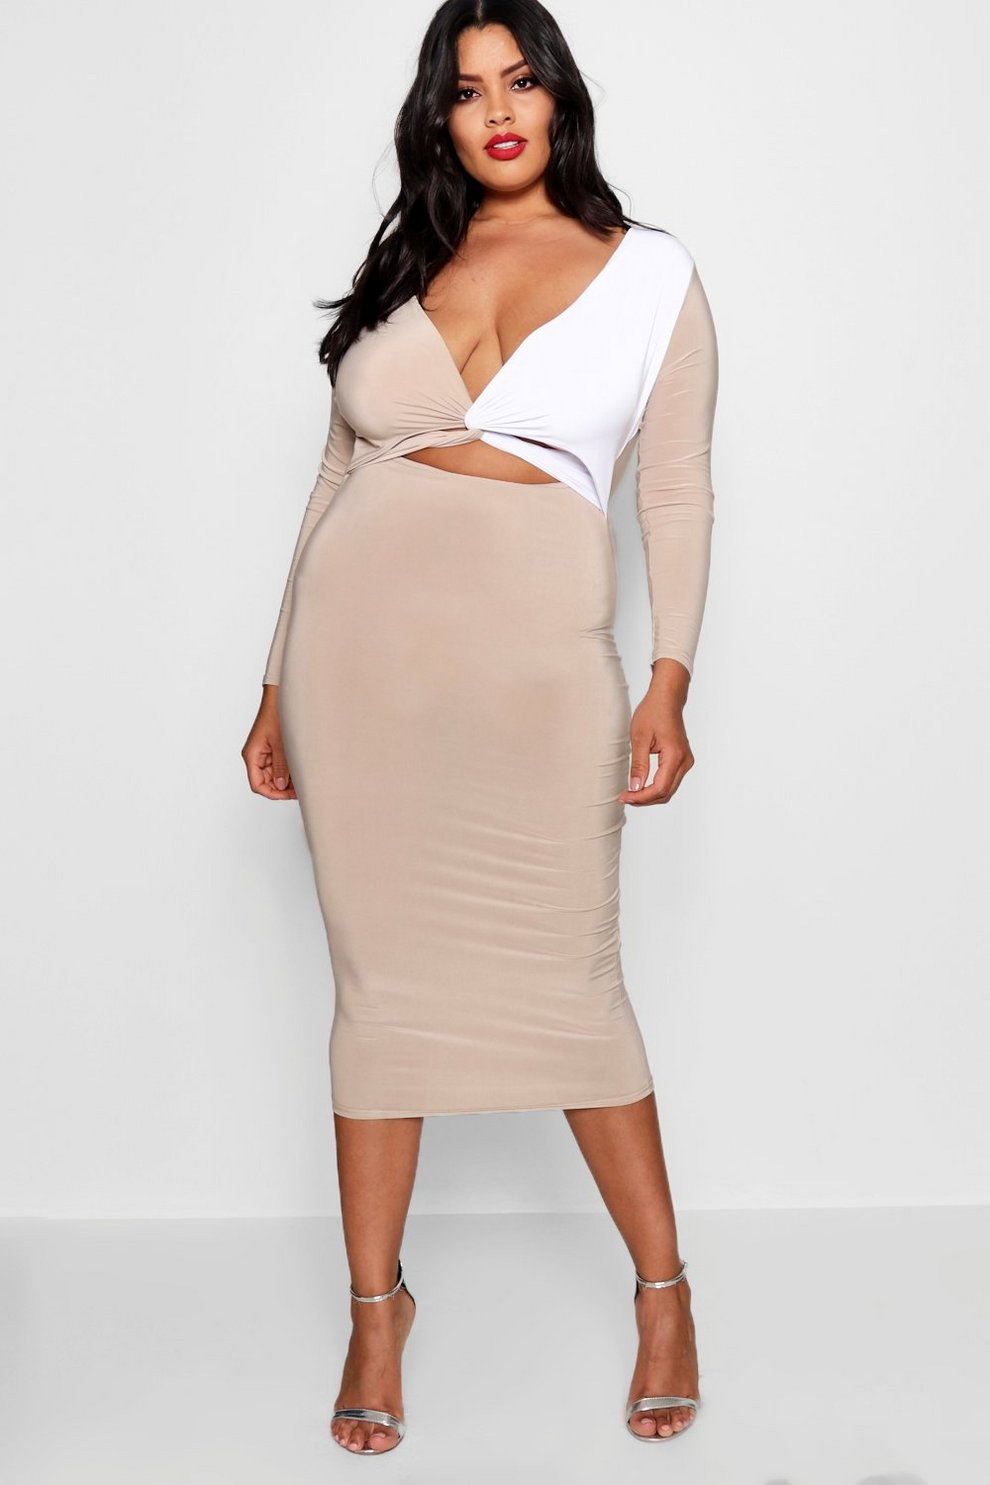 Free Shipping Visa Payment Discount Really Boohoo Plus Colour Block Twist Midi Dress Discounts Cheap Price Many Kinds Of Cheap Price Clearance Outlet Store pf5F0